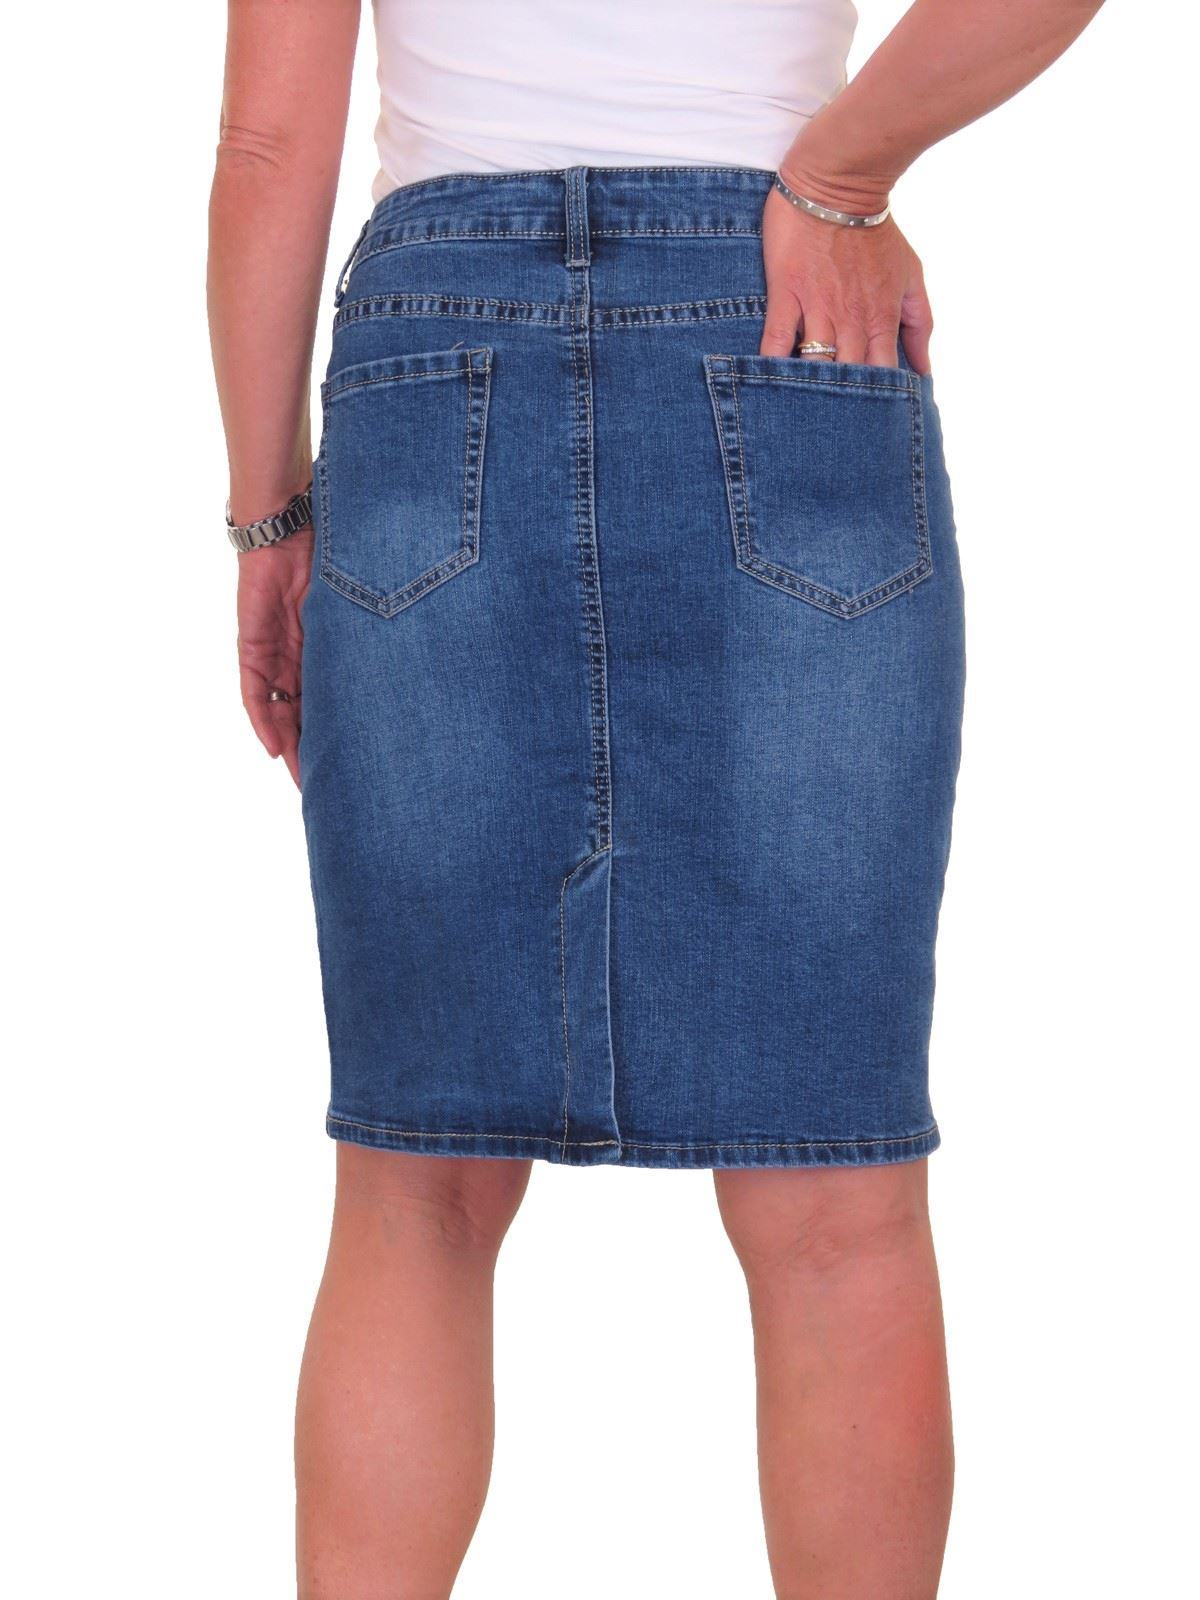 ICE-Stretch-Denim-Above-Knee-Jeans-Pencil-Skirt-Faded-Wash-10-18 thumbnail 8